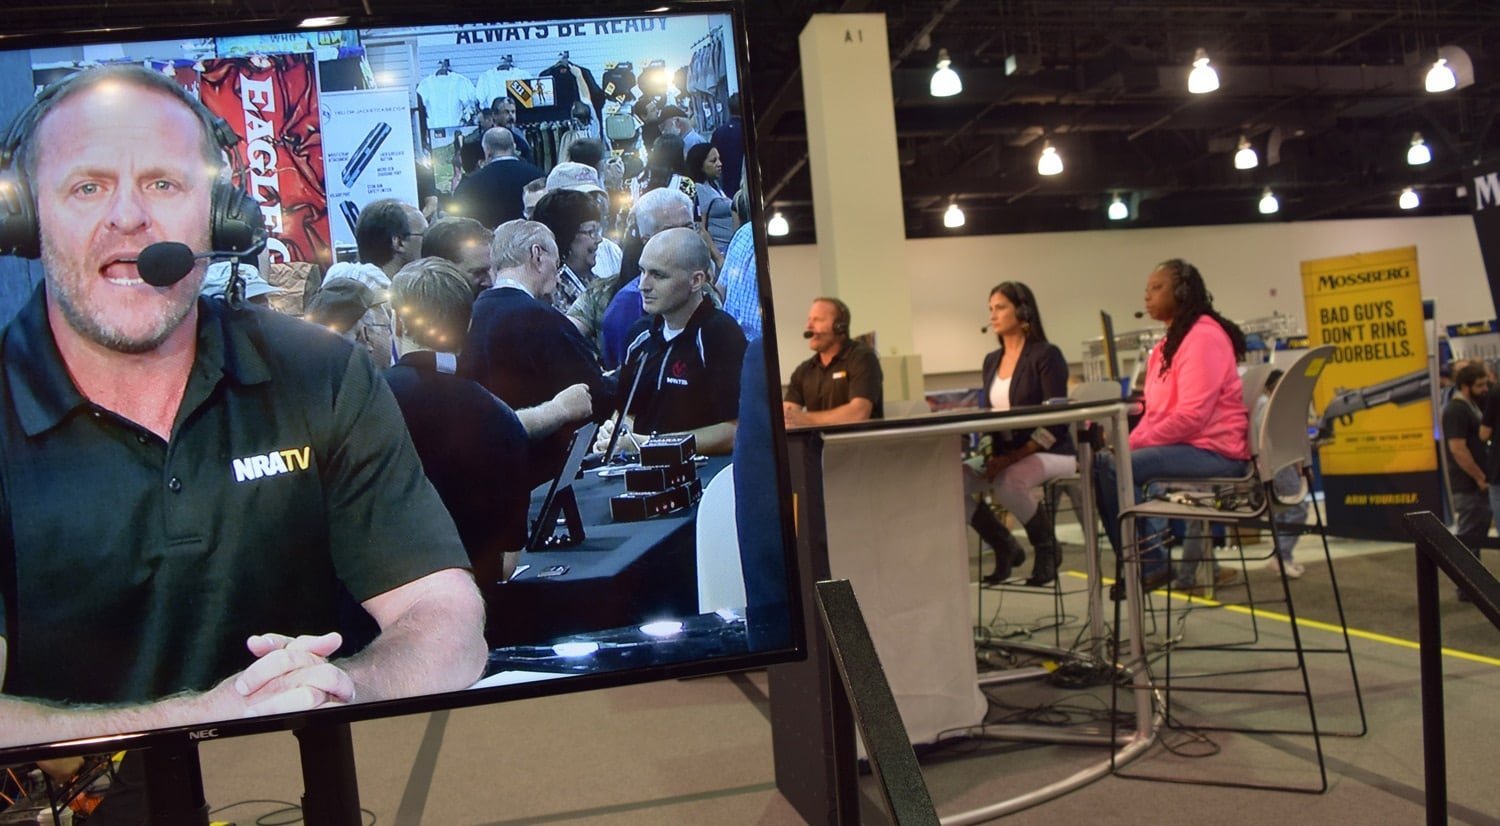 A completely calm NRATV host Grant Stinchfield reads from a teleprompter before a live audience. (Photo: Daniel Terrill/Guns.com)